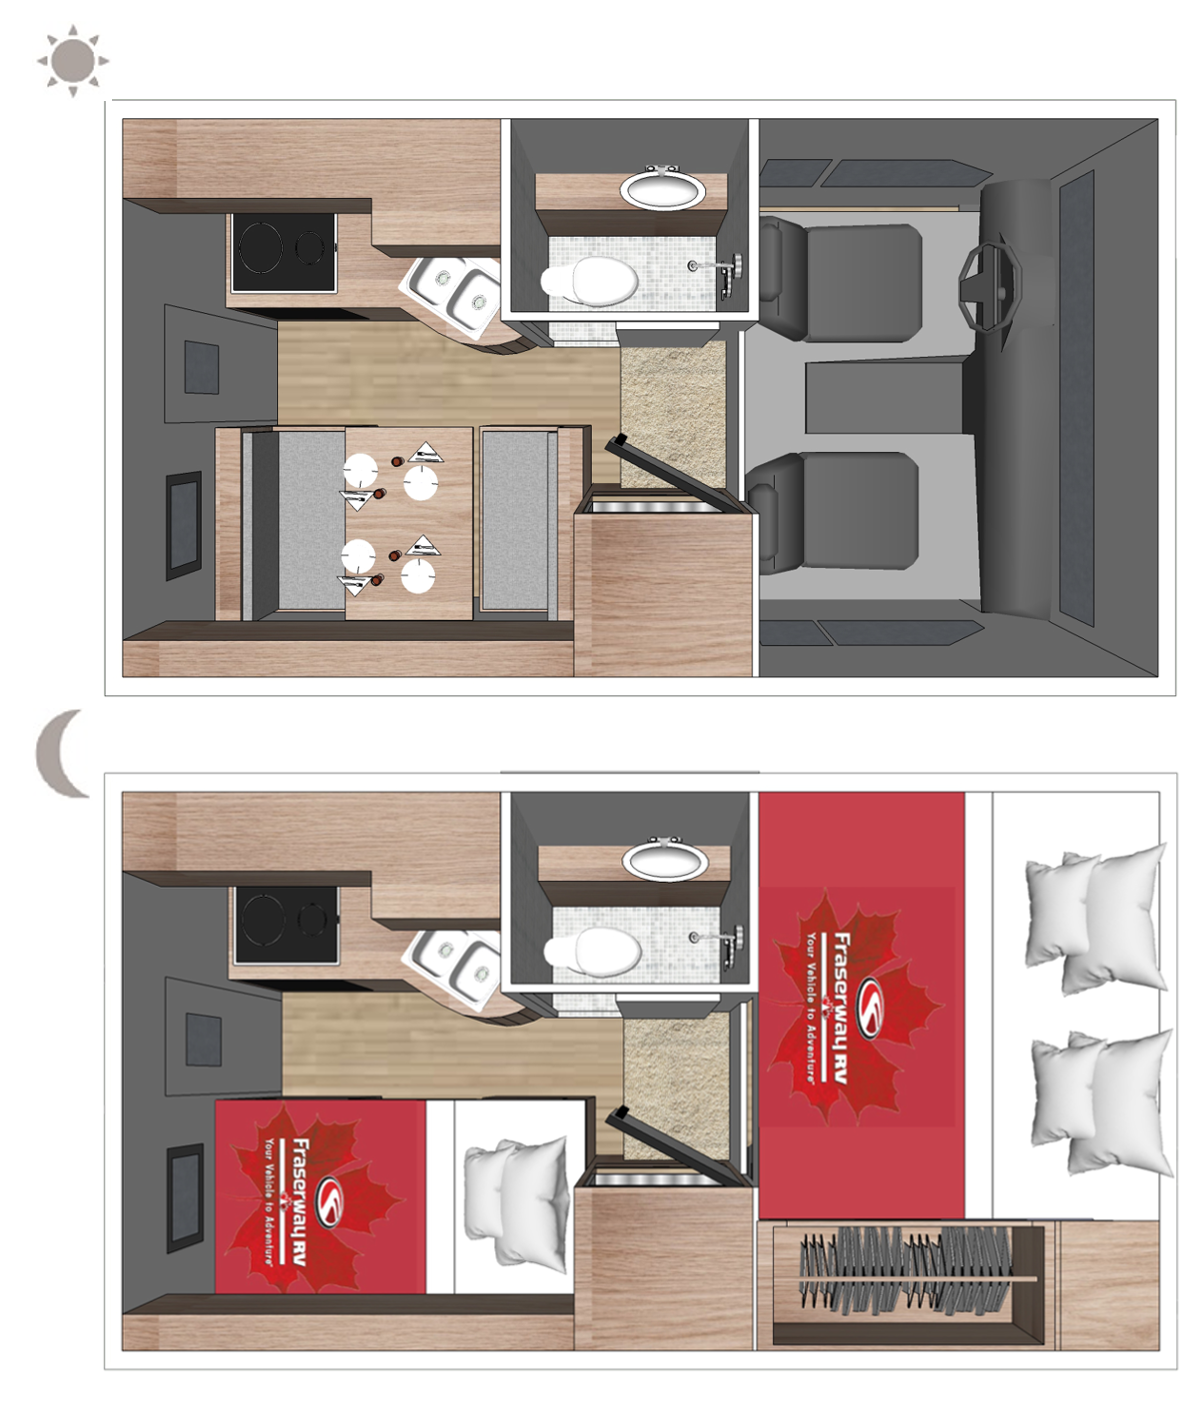 Truck Camper Floor plan (day and night)